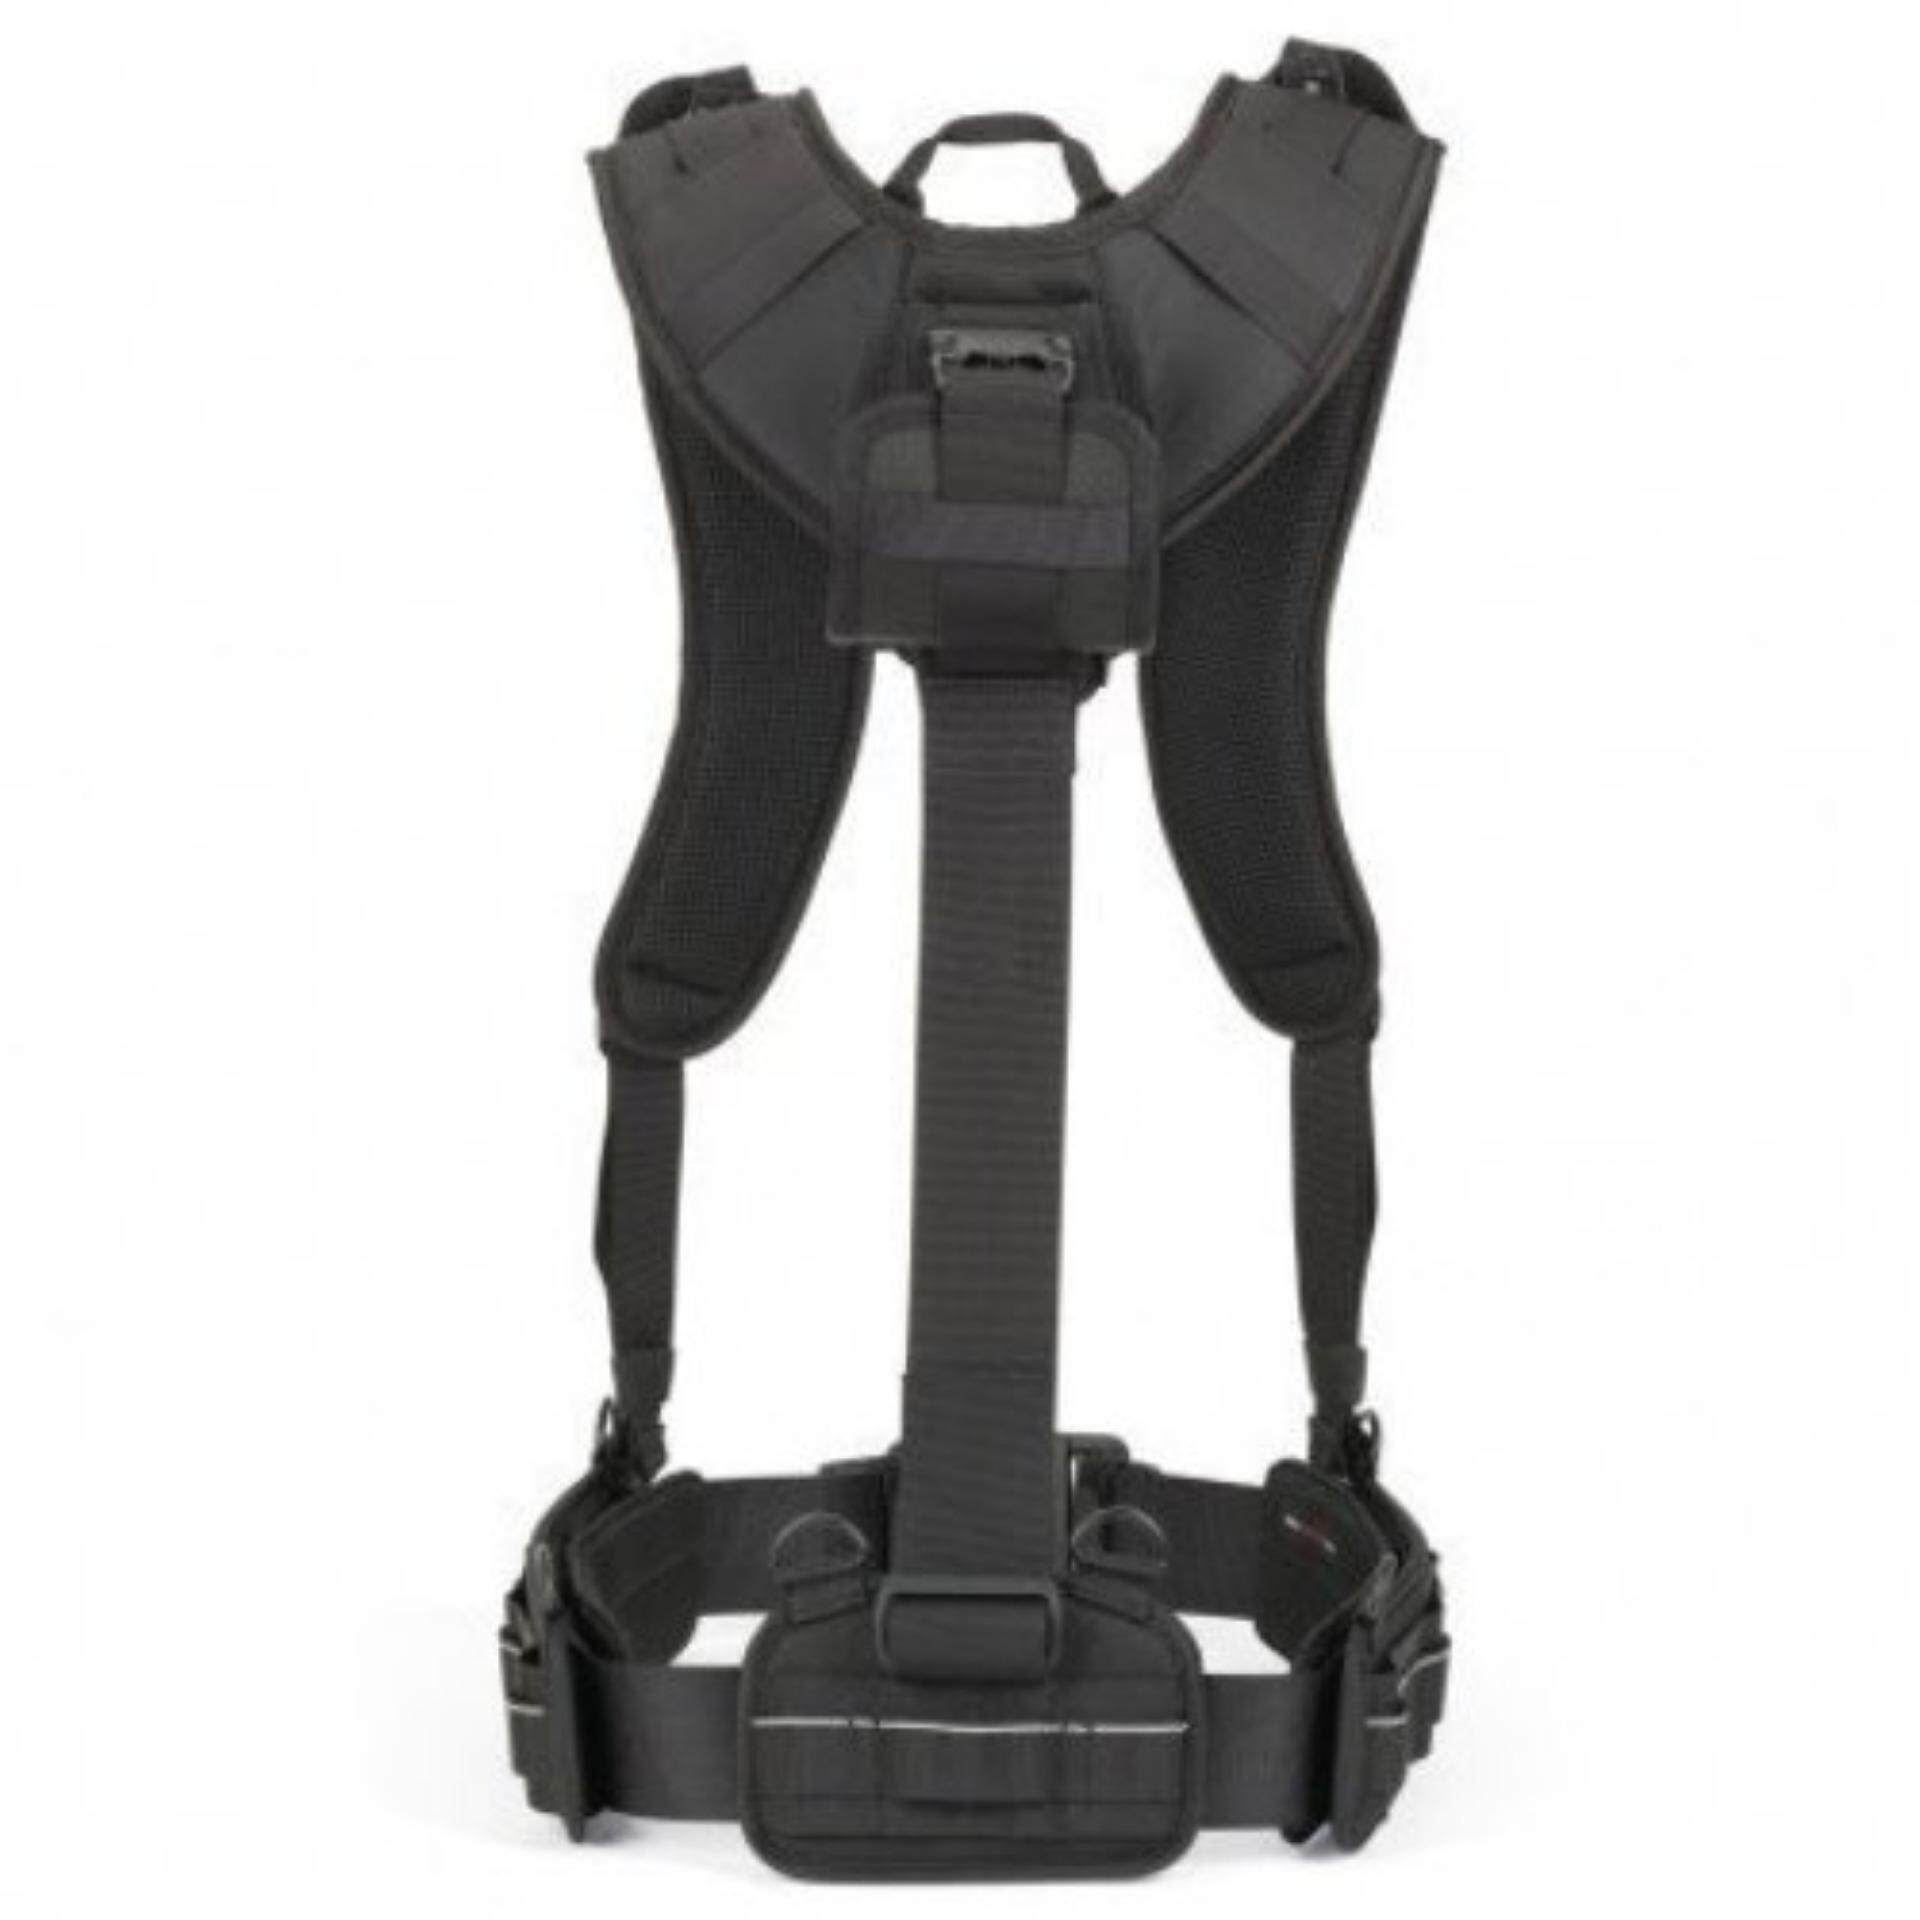 Buy Lowepro Camera Cases Online Bags Viewpoint Cs 60 Sf Technical Harness